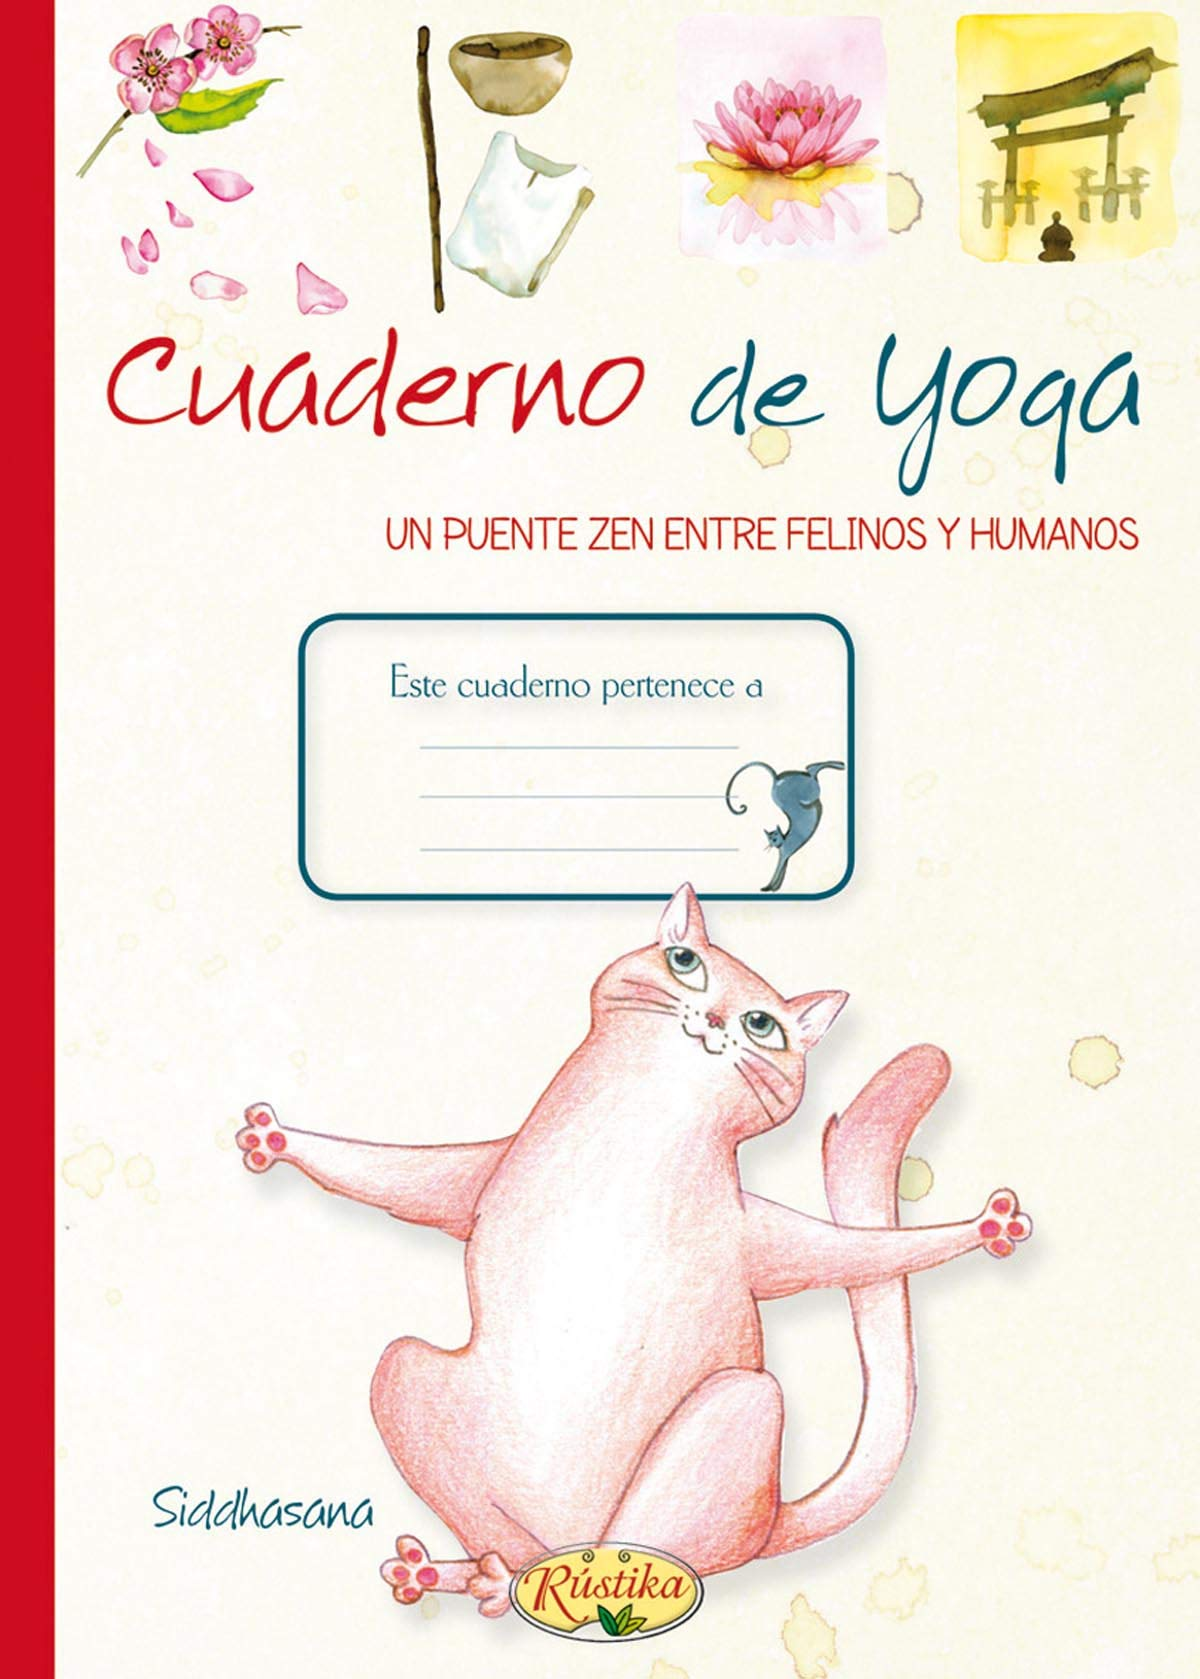 CUADERNO YOGA REF. 1 / 13 RUSTIKA: Unknown: 9788490870082 ...